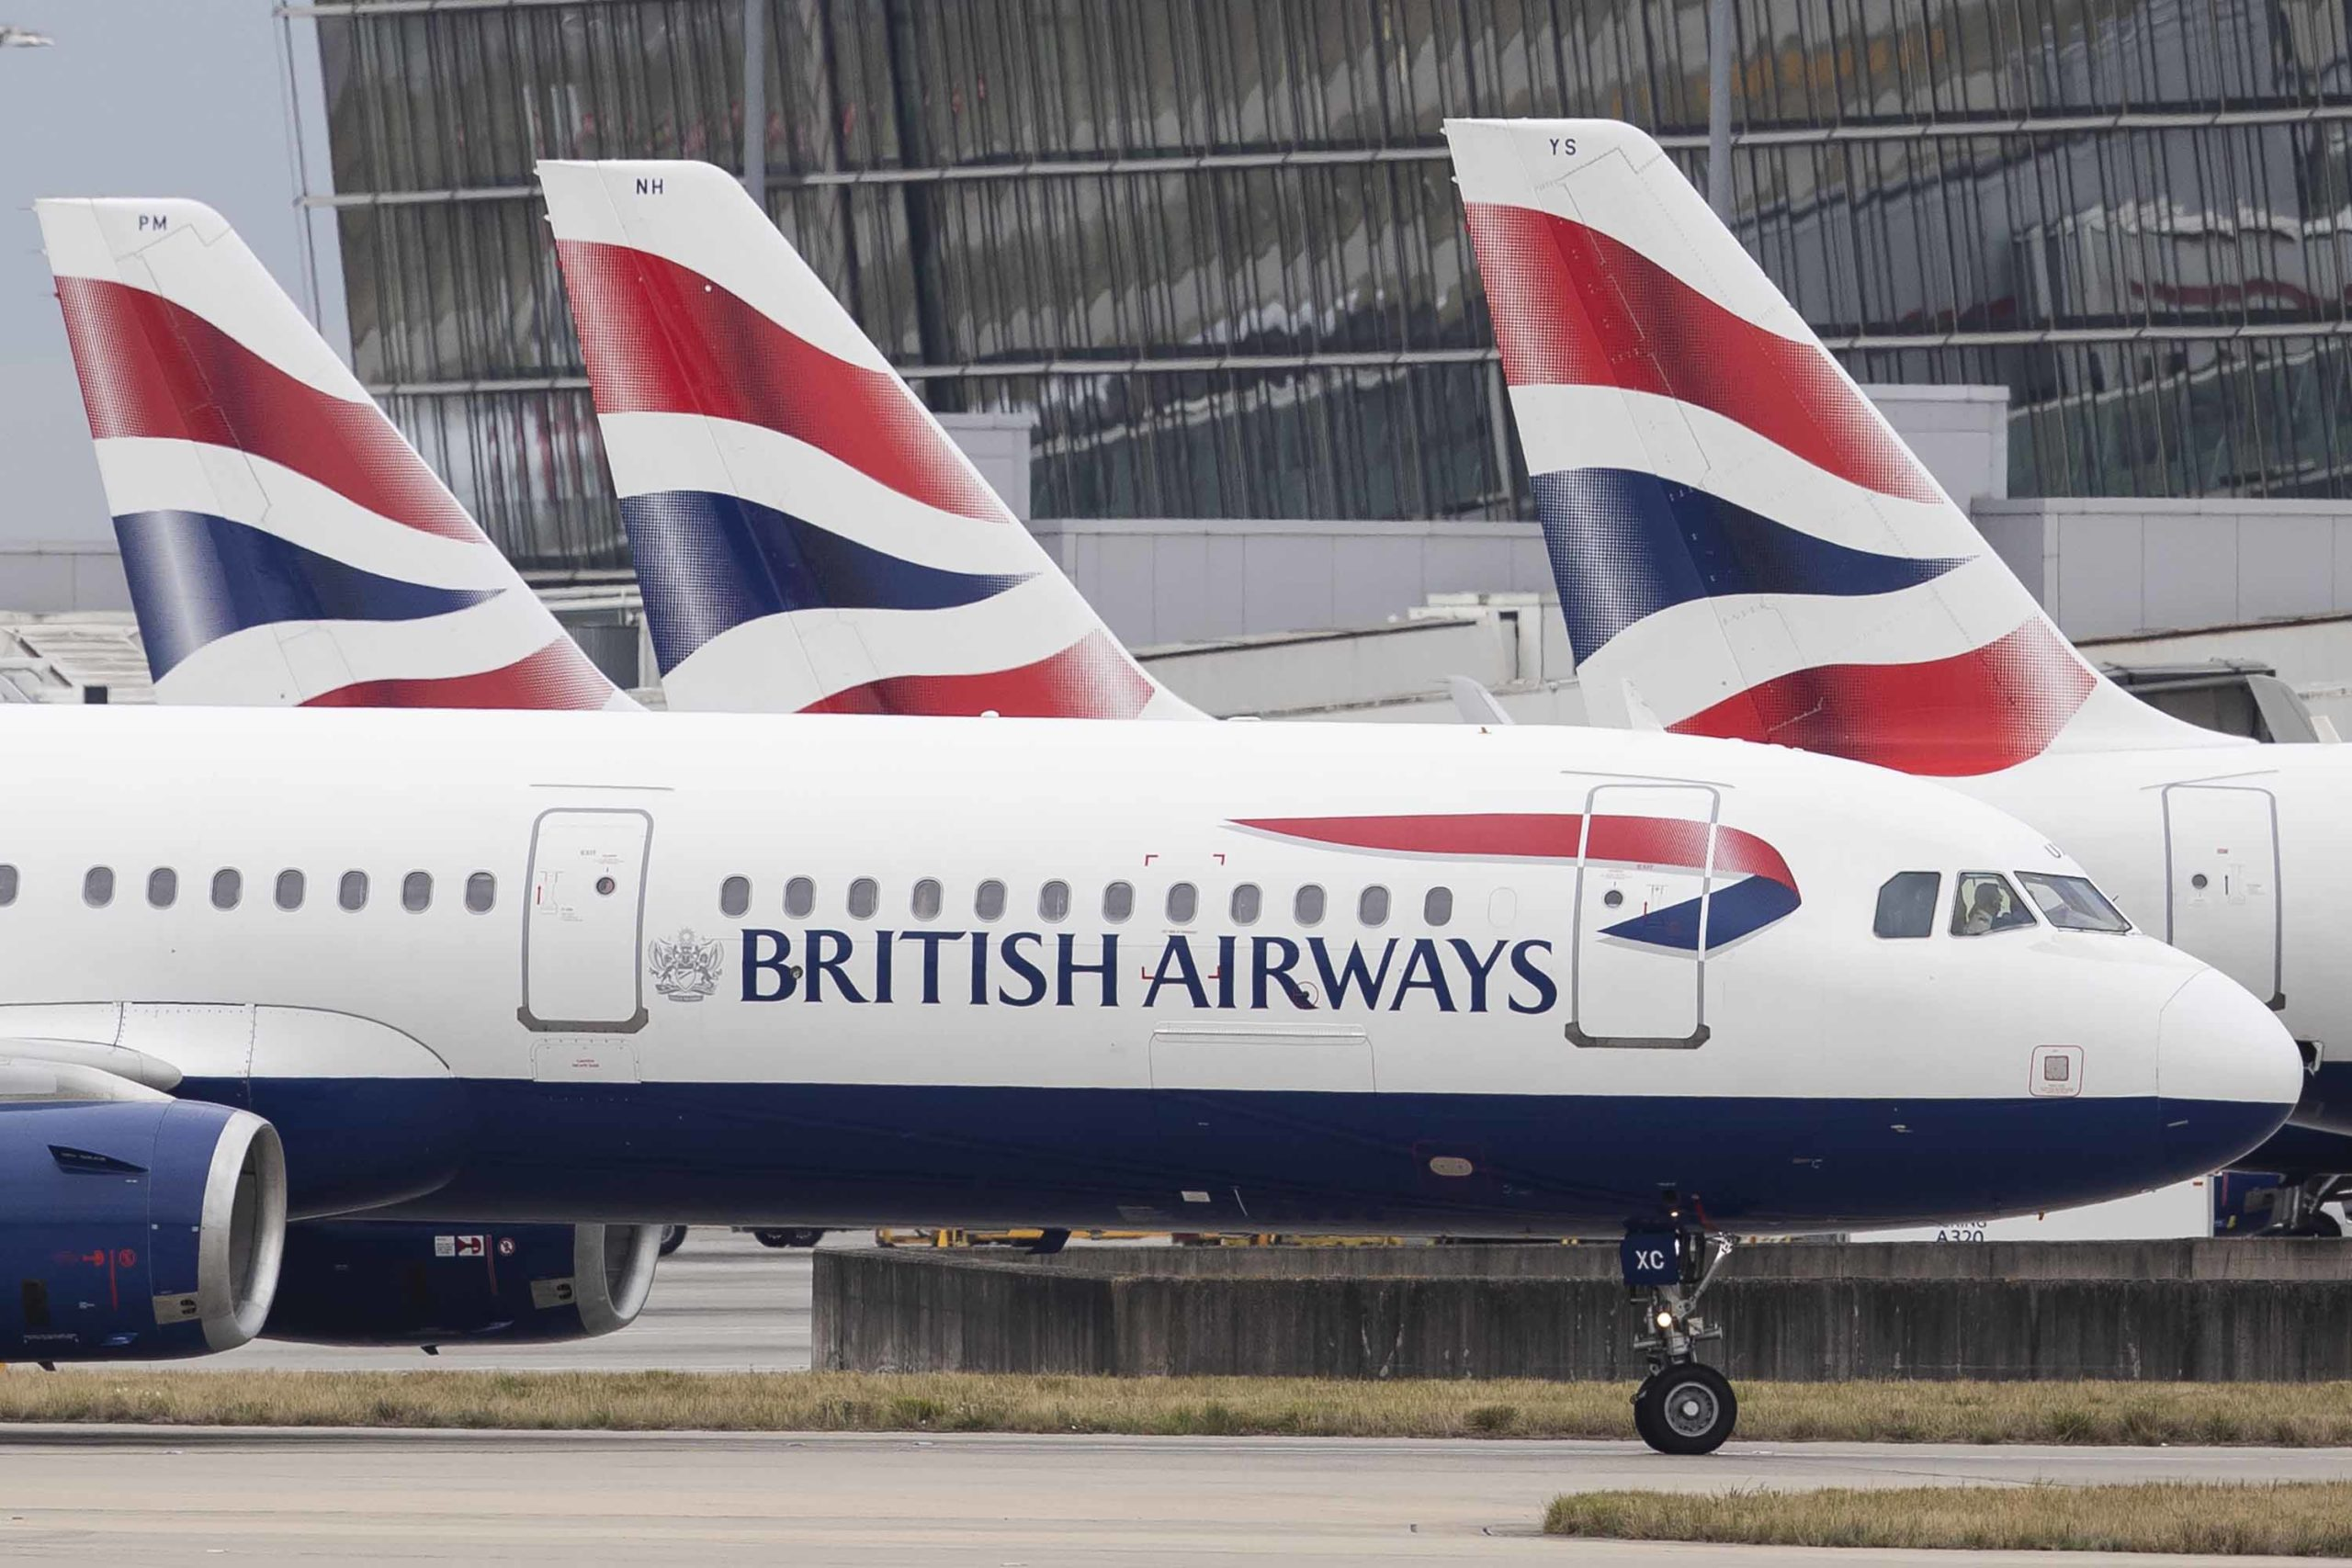 British Airways stewardess reportedly offers 'adult entertainment', Probe launched